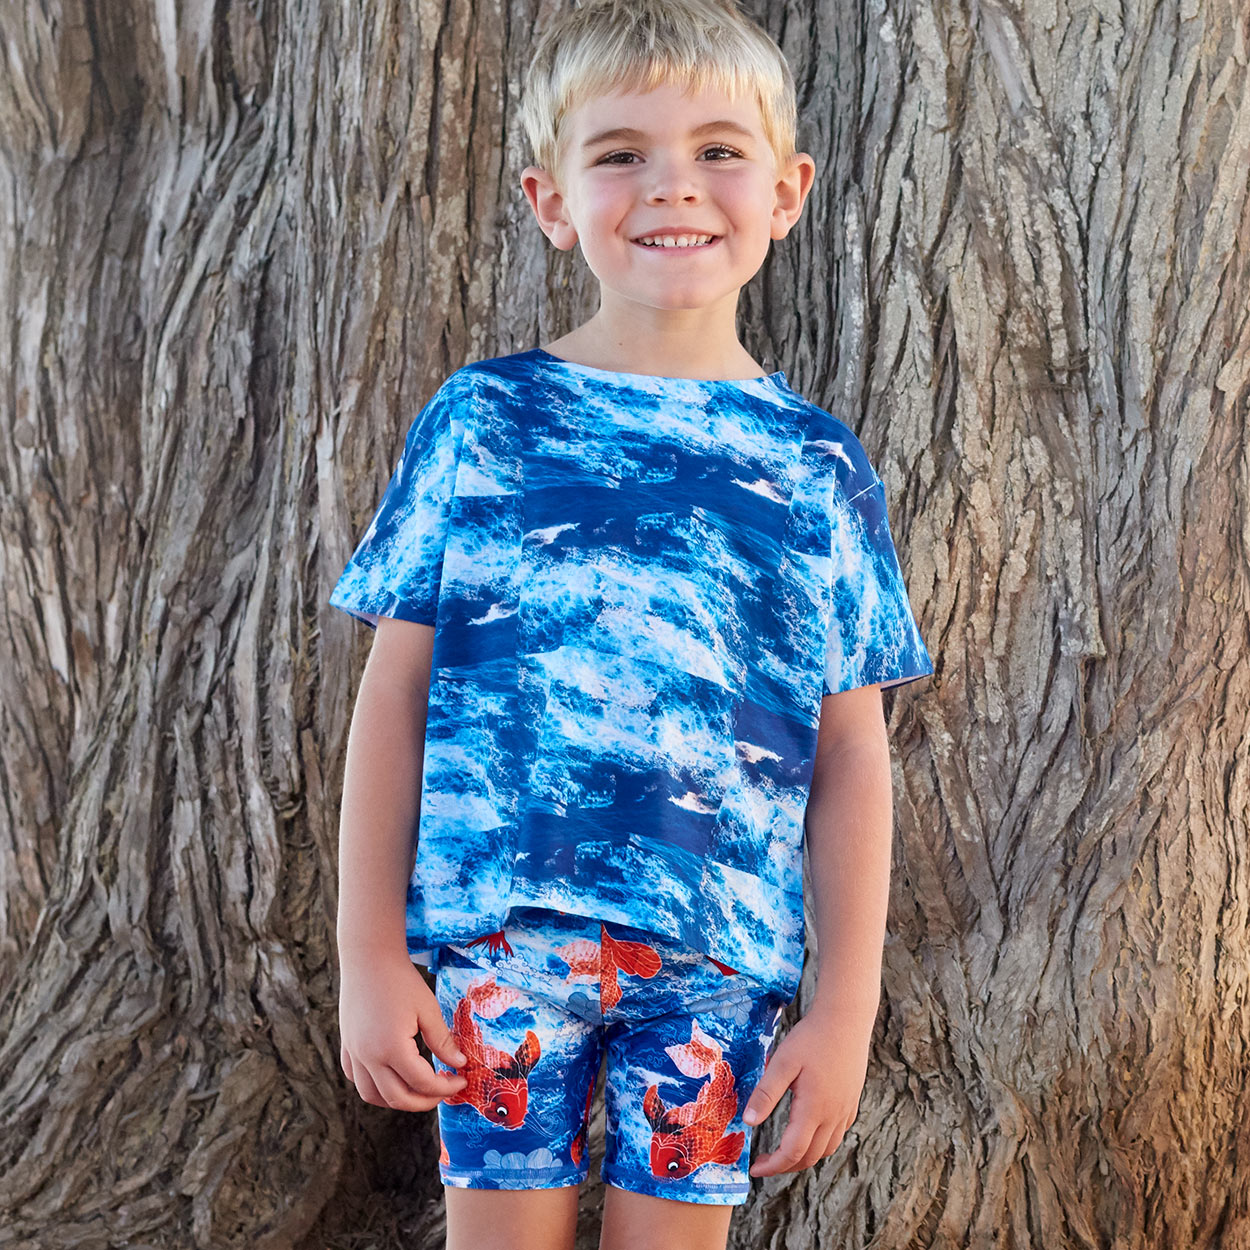 Kids Whitecaps Photo Tshirt White Blue Size Xs L Boy Standing In The Shade Smiling Sunpoplife